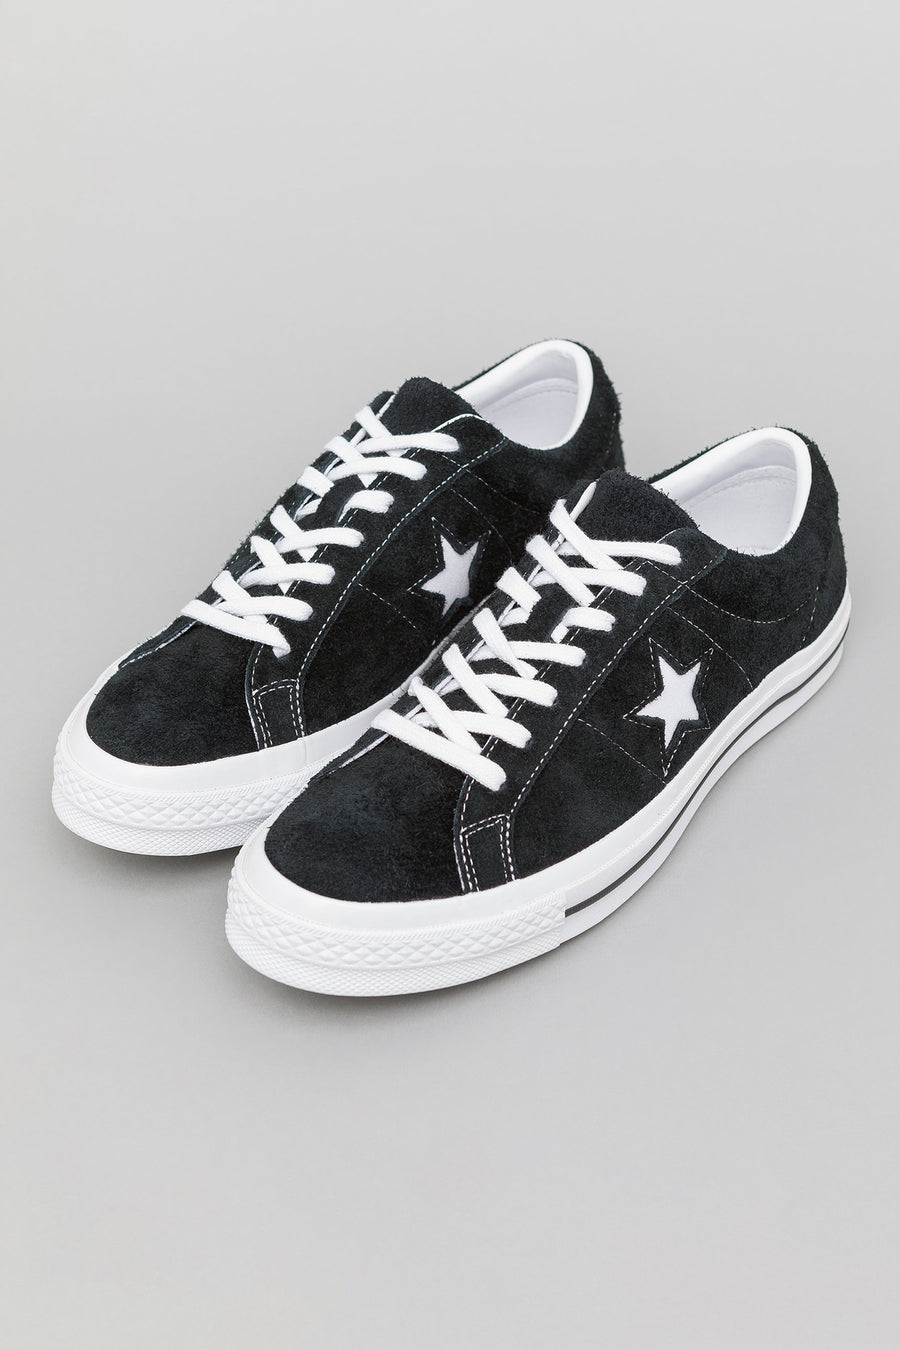 Converse One Star Ox in Black/White - Notre